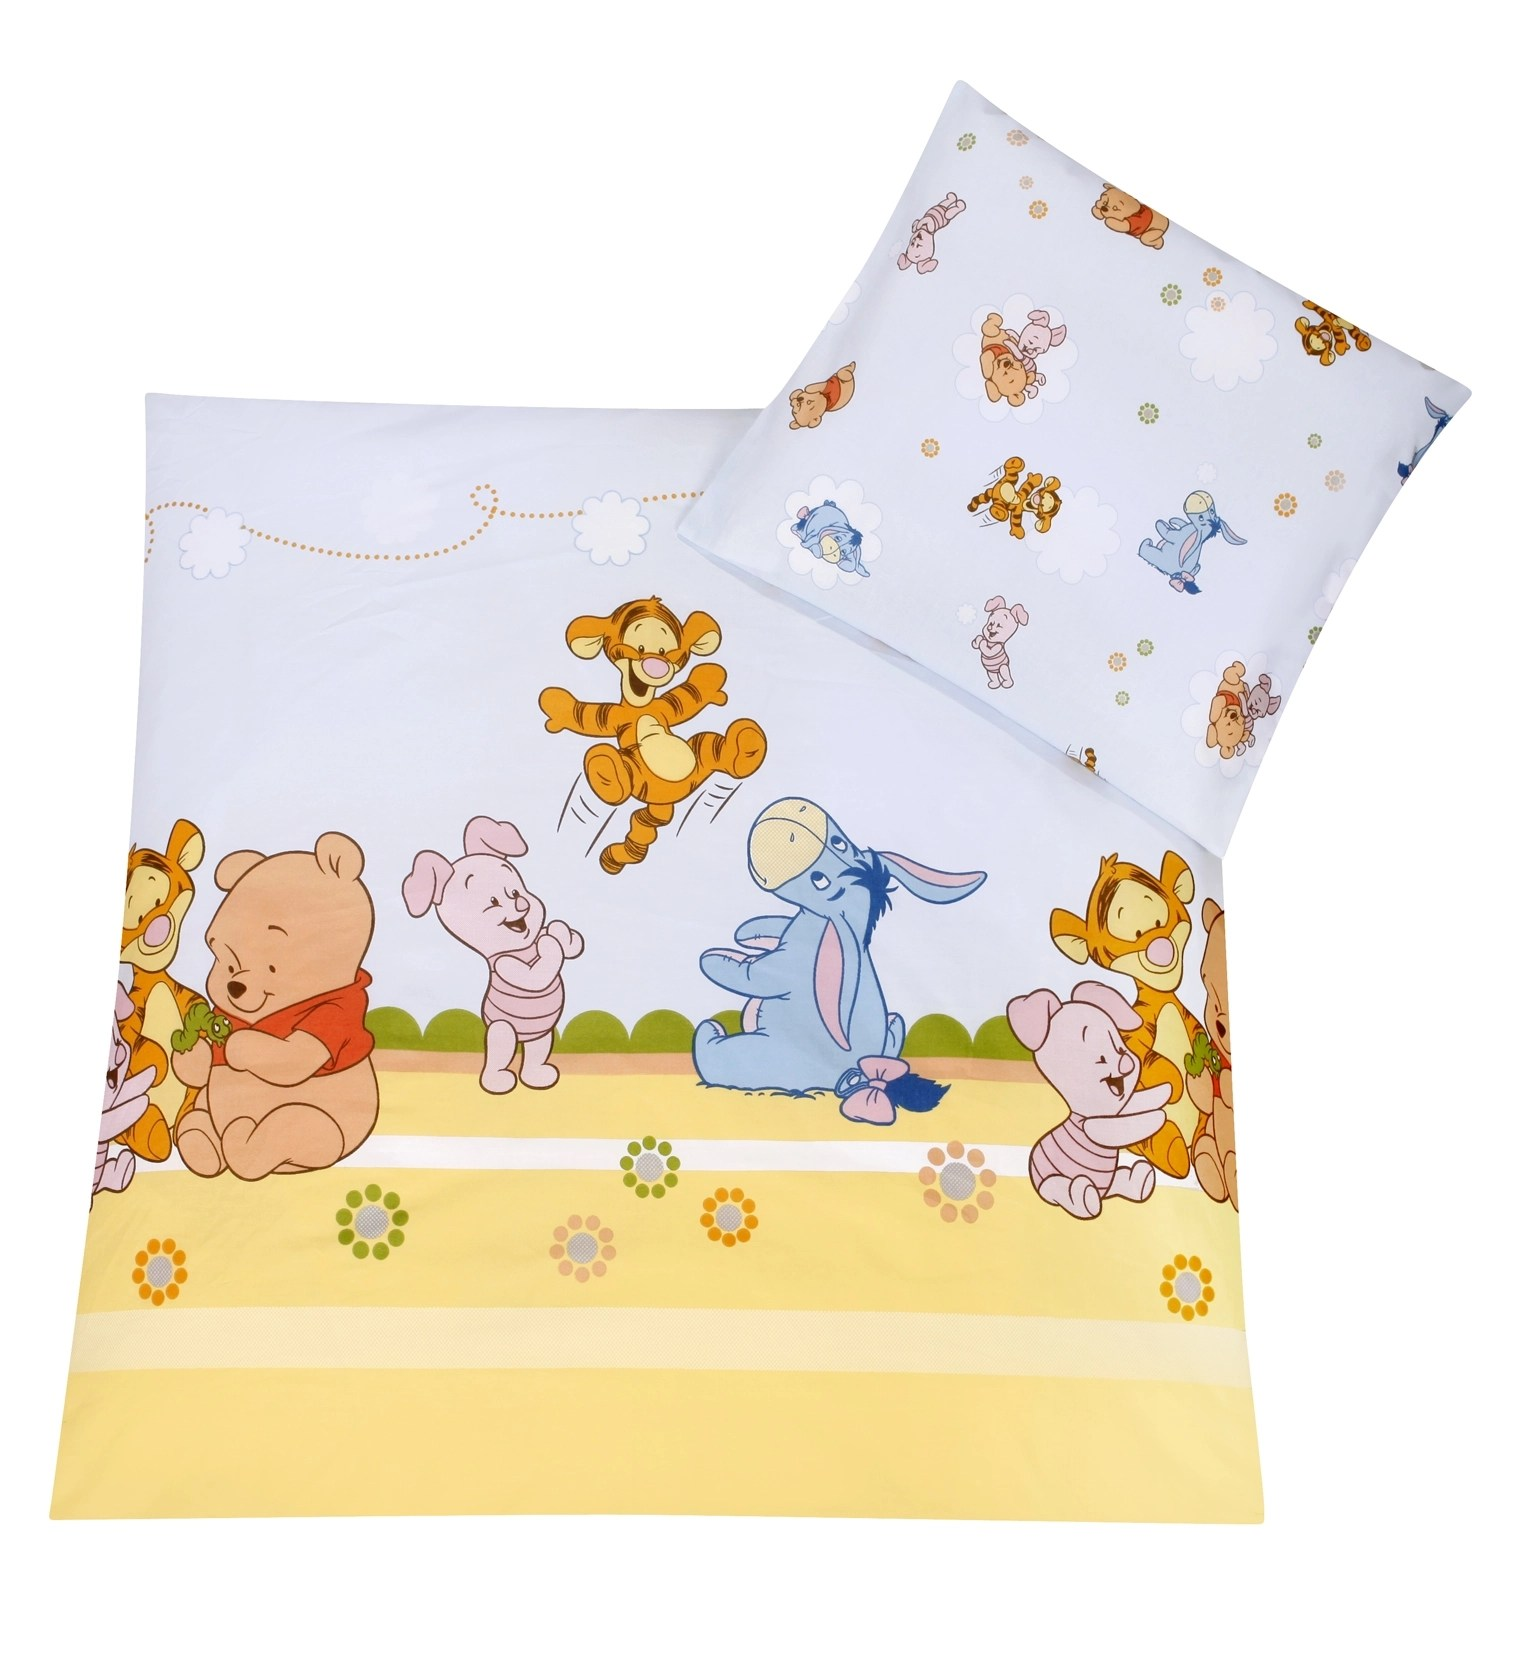 Baby Bettwäsche 80x80 35x40 Zöllner Disney Bettwäsche Baby Pooh And Friends 80x80 35x40 Cm